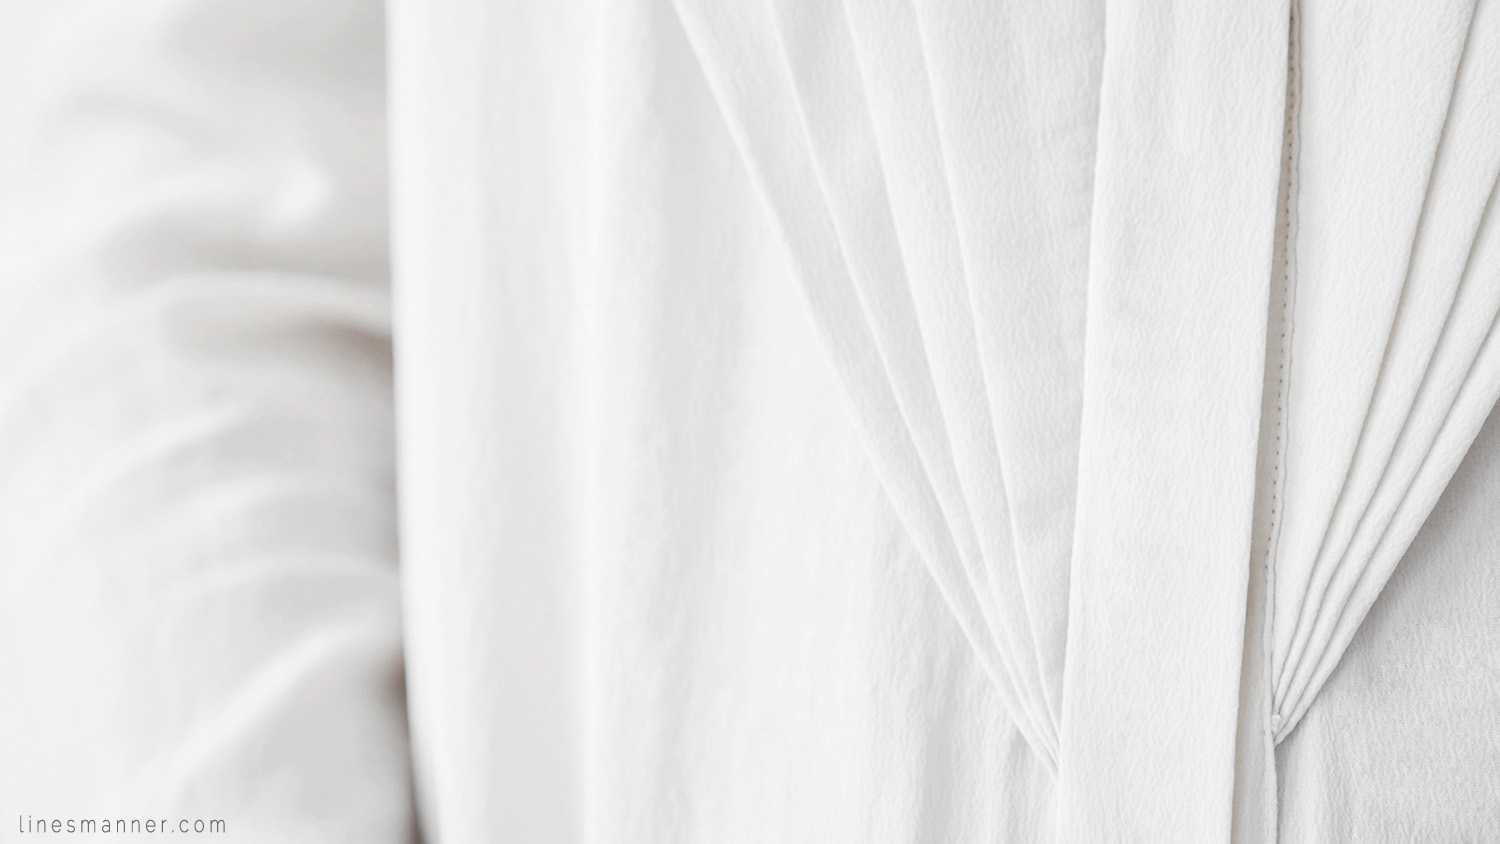 Lines-Manner-Remind-2015-Minimal-Essential-Outfit-Inspiration-Blog-Timeless-Year-Seasons-Details-Travel-Fashion-Versatile-Clean-Sleek-Quality-7